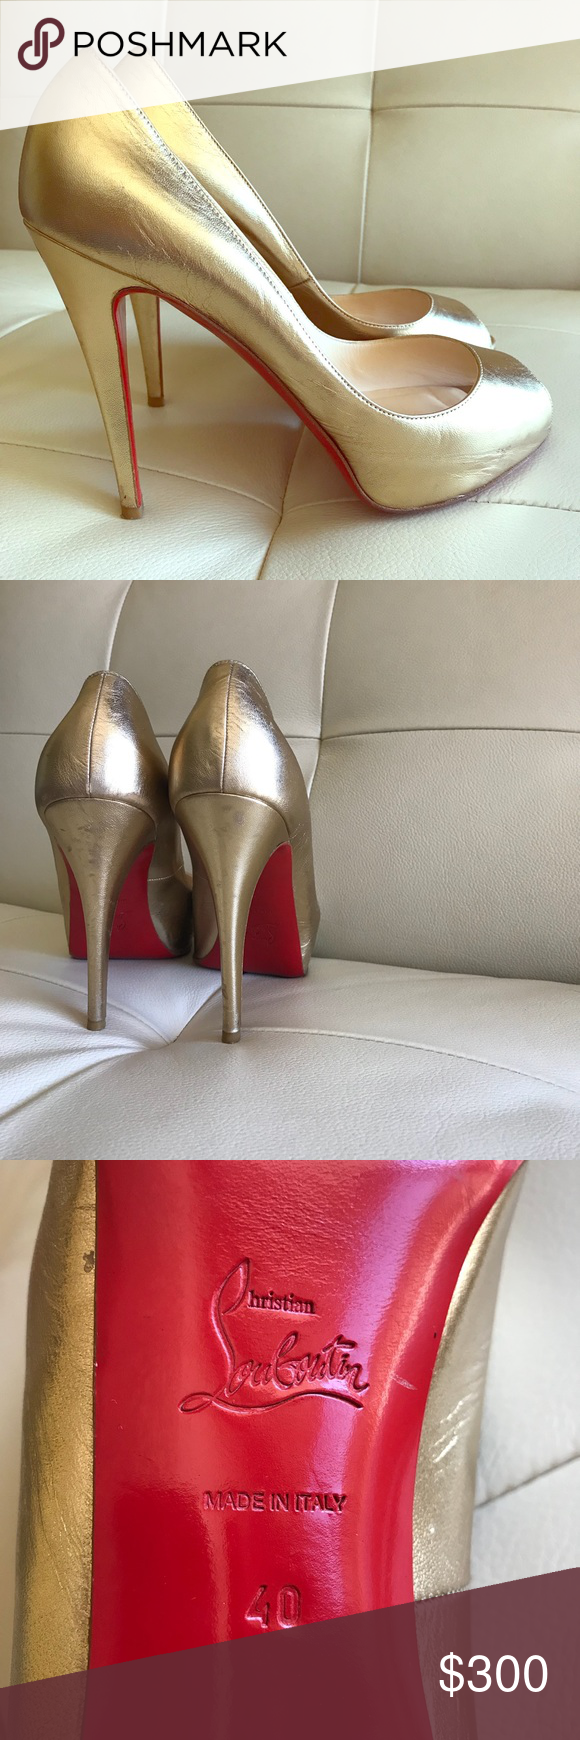 e2afe0cdab Christian Louboutin Very Prive 120 Pumps Gold 9 100% genuine Christian  Louboutin peep toe heels in excellent condition! DESCRIPTION PRODUCT  OVERVIEW ...